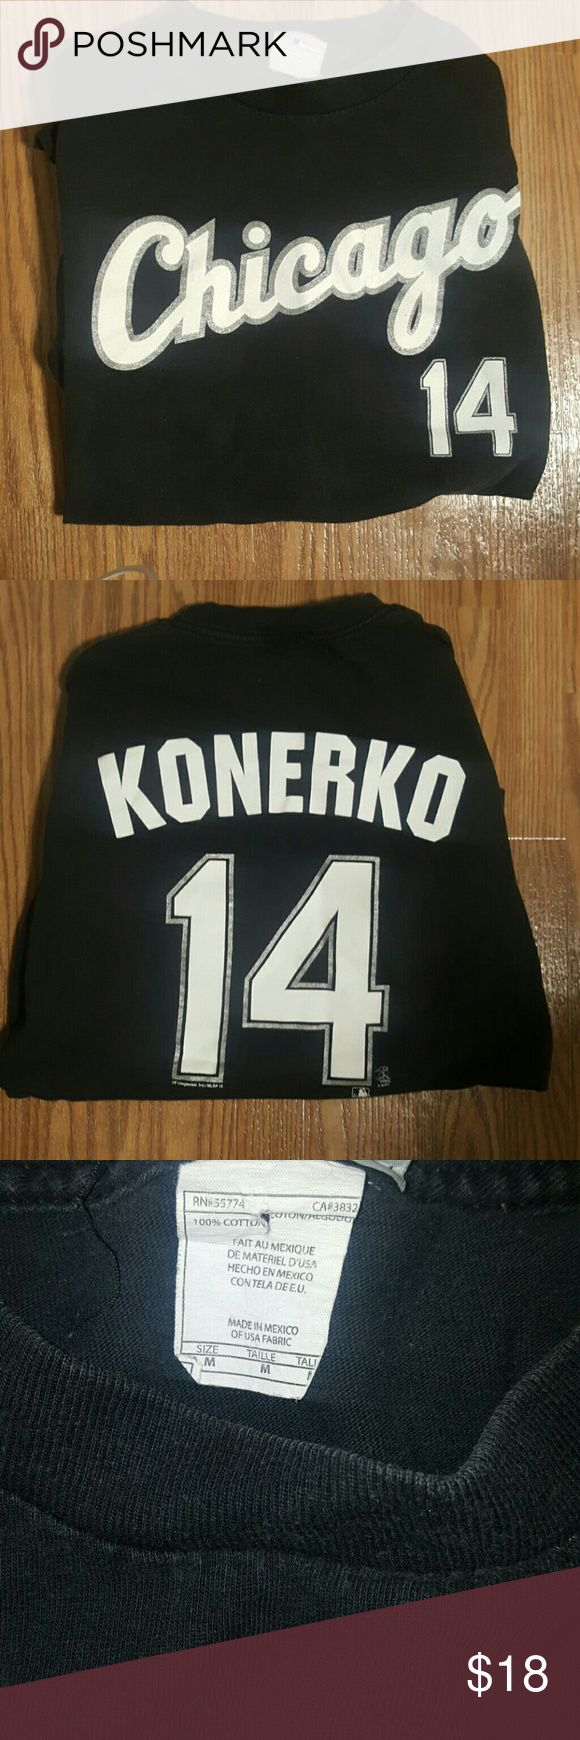 Chicago White Sox Paul Konerko Short Sleeve Tee Very good condition! Best for Chicago White Sox Fans! VINTAGE! Great find & Great deal! Fits true to size! Shirts Tees - Short Sleeve